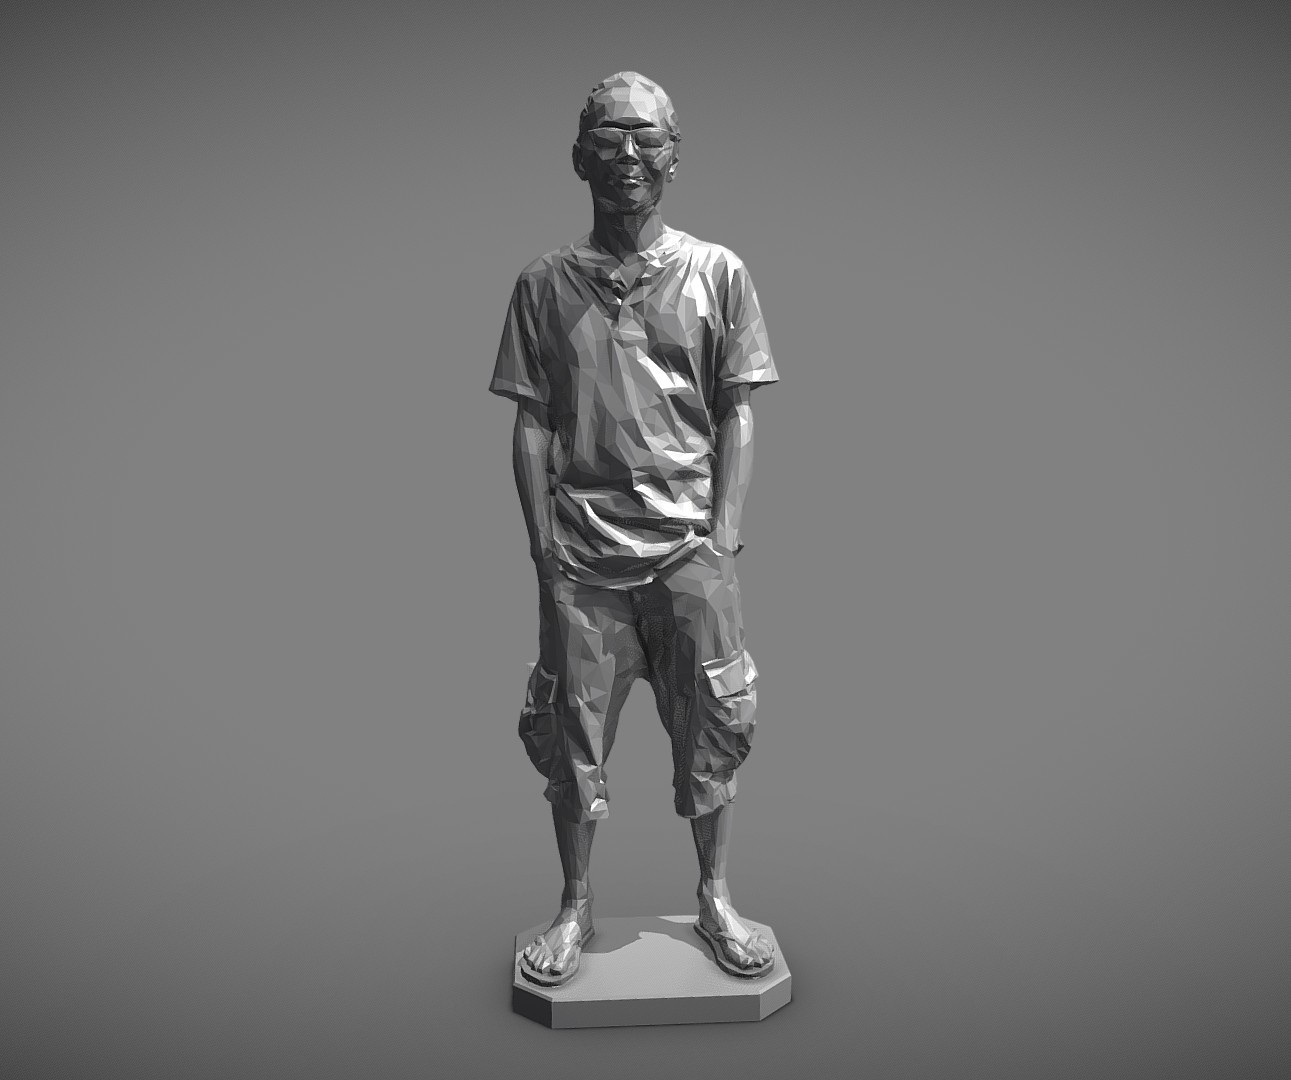 MW 3D printing test-Low - Download Free 3D model by mwopus (@mwopus) - Sketchfab20190320-007949.jpg Download STL file MW 3D printing test-Low,Medium,High • Template to 3D print, MWopus